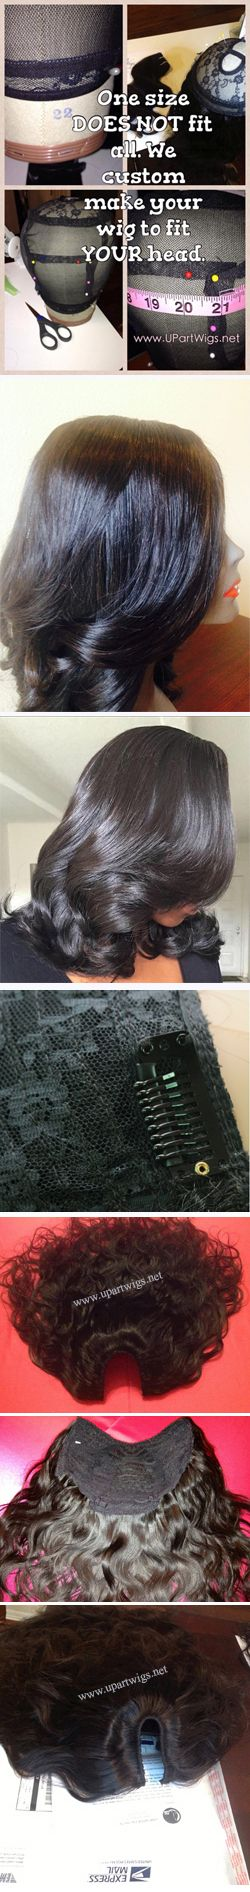 U Part Wigs Custom Made with Virgin Hair - Free Shipping